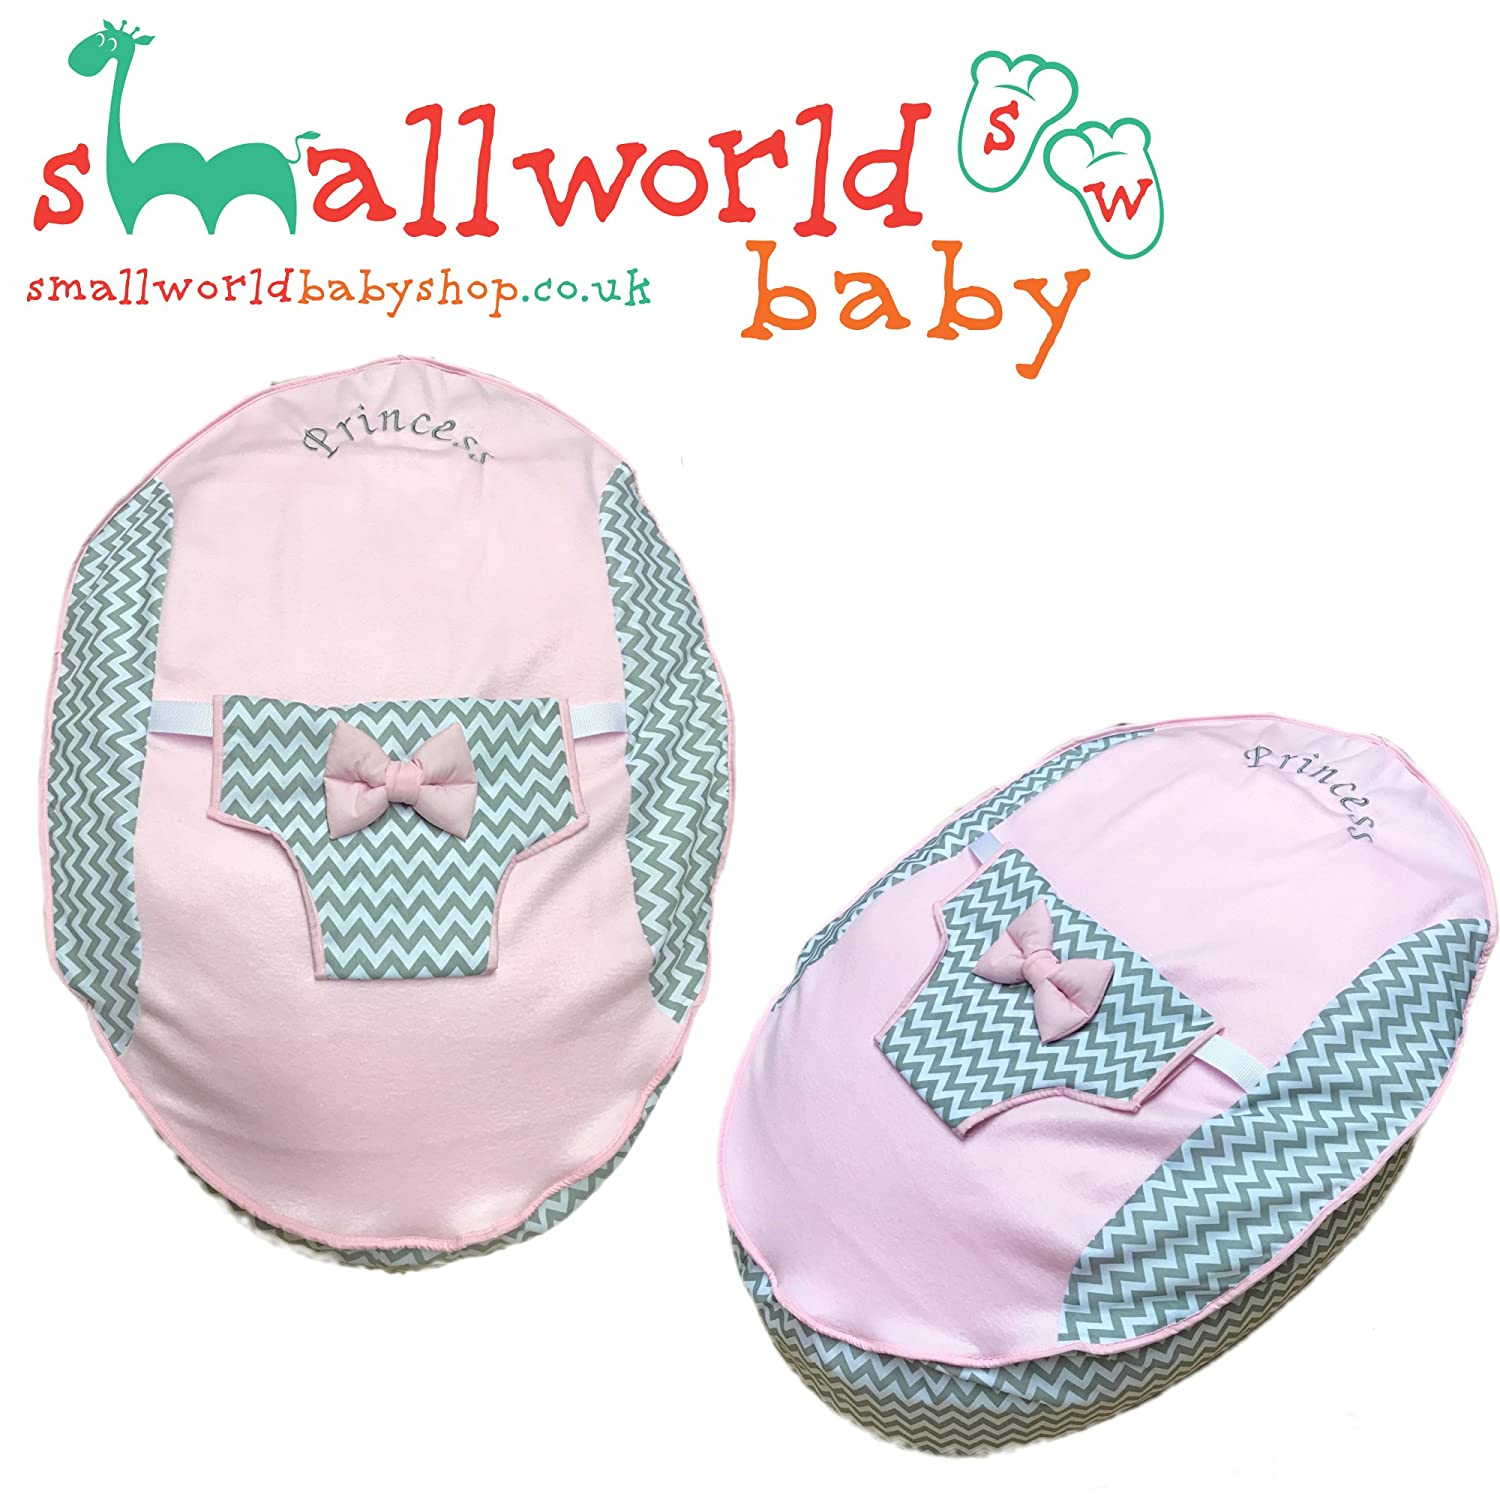 PERSONALISED PRE FILLED BABY BEAN BAG CHAIR SEAT NEWBORN GIRLS NEWBORN (NEXT DAY DISPATCH) Small World Baby Shop